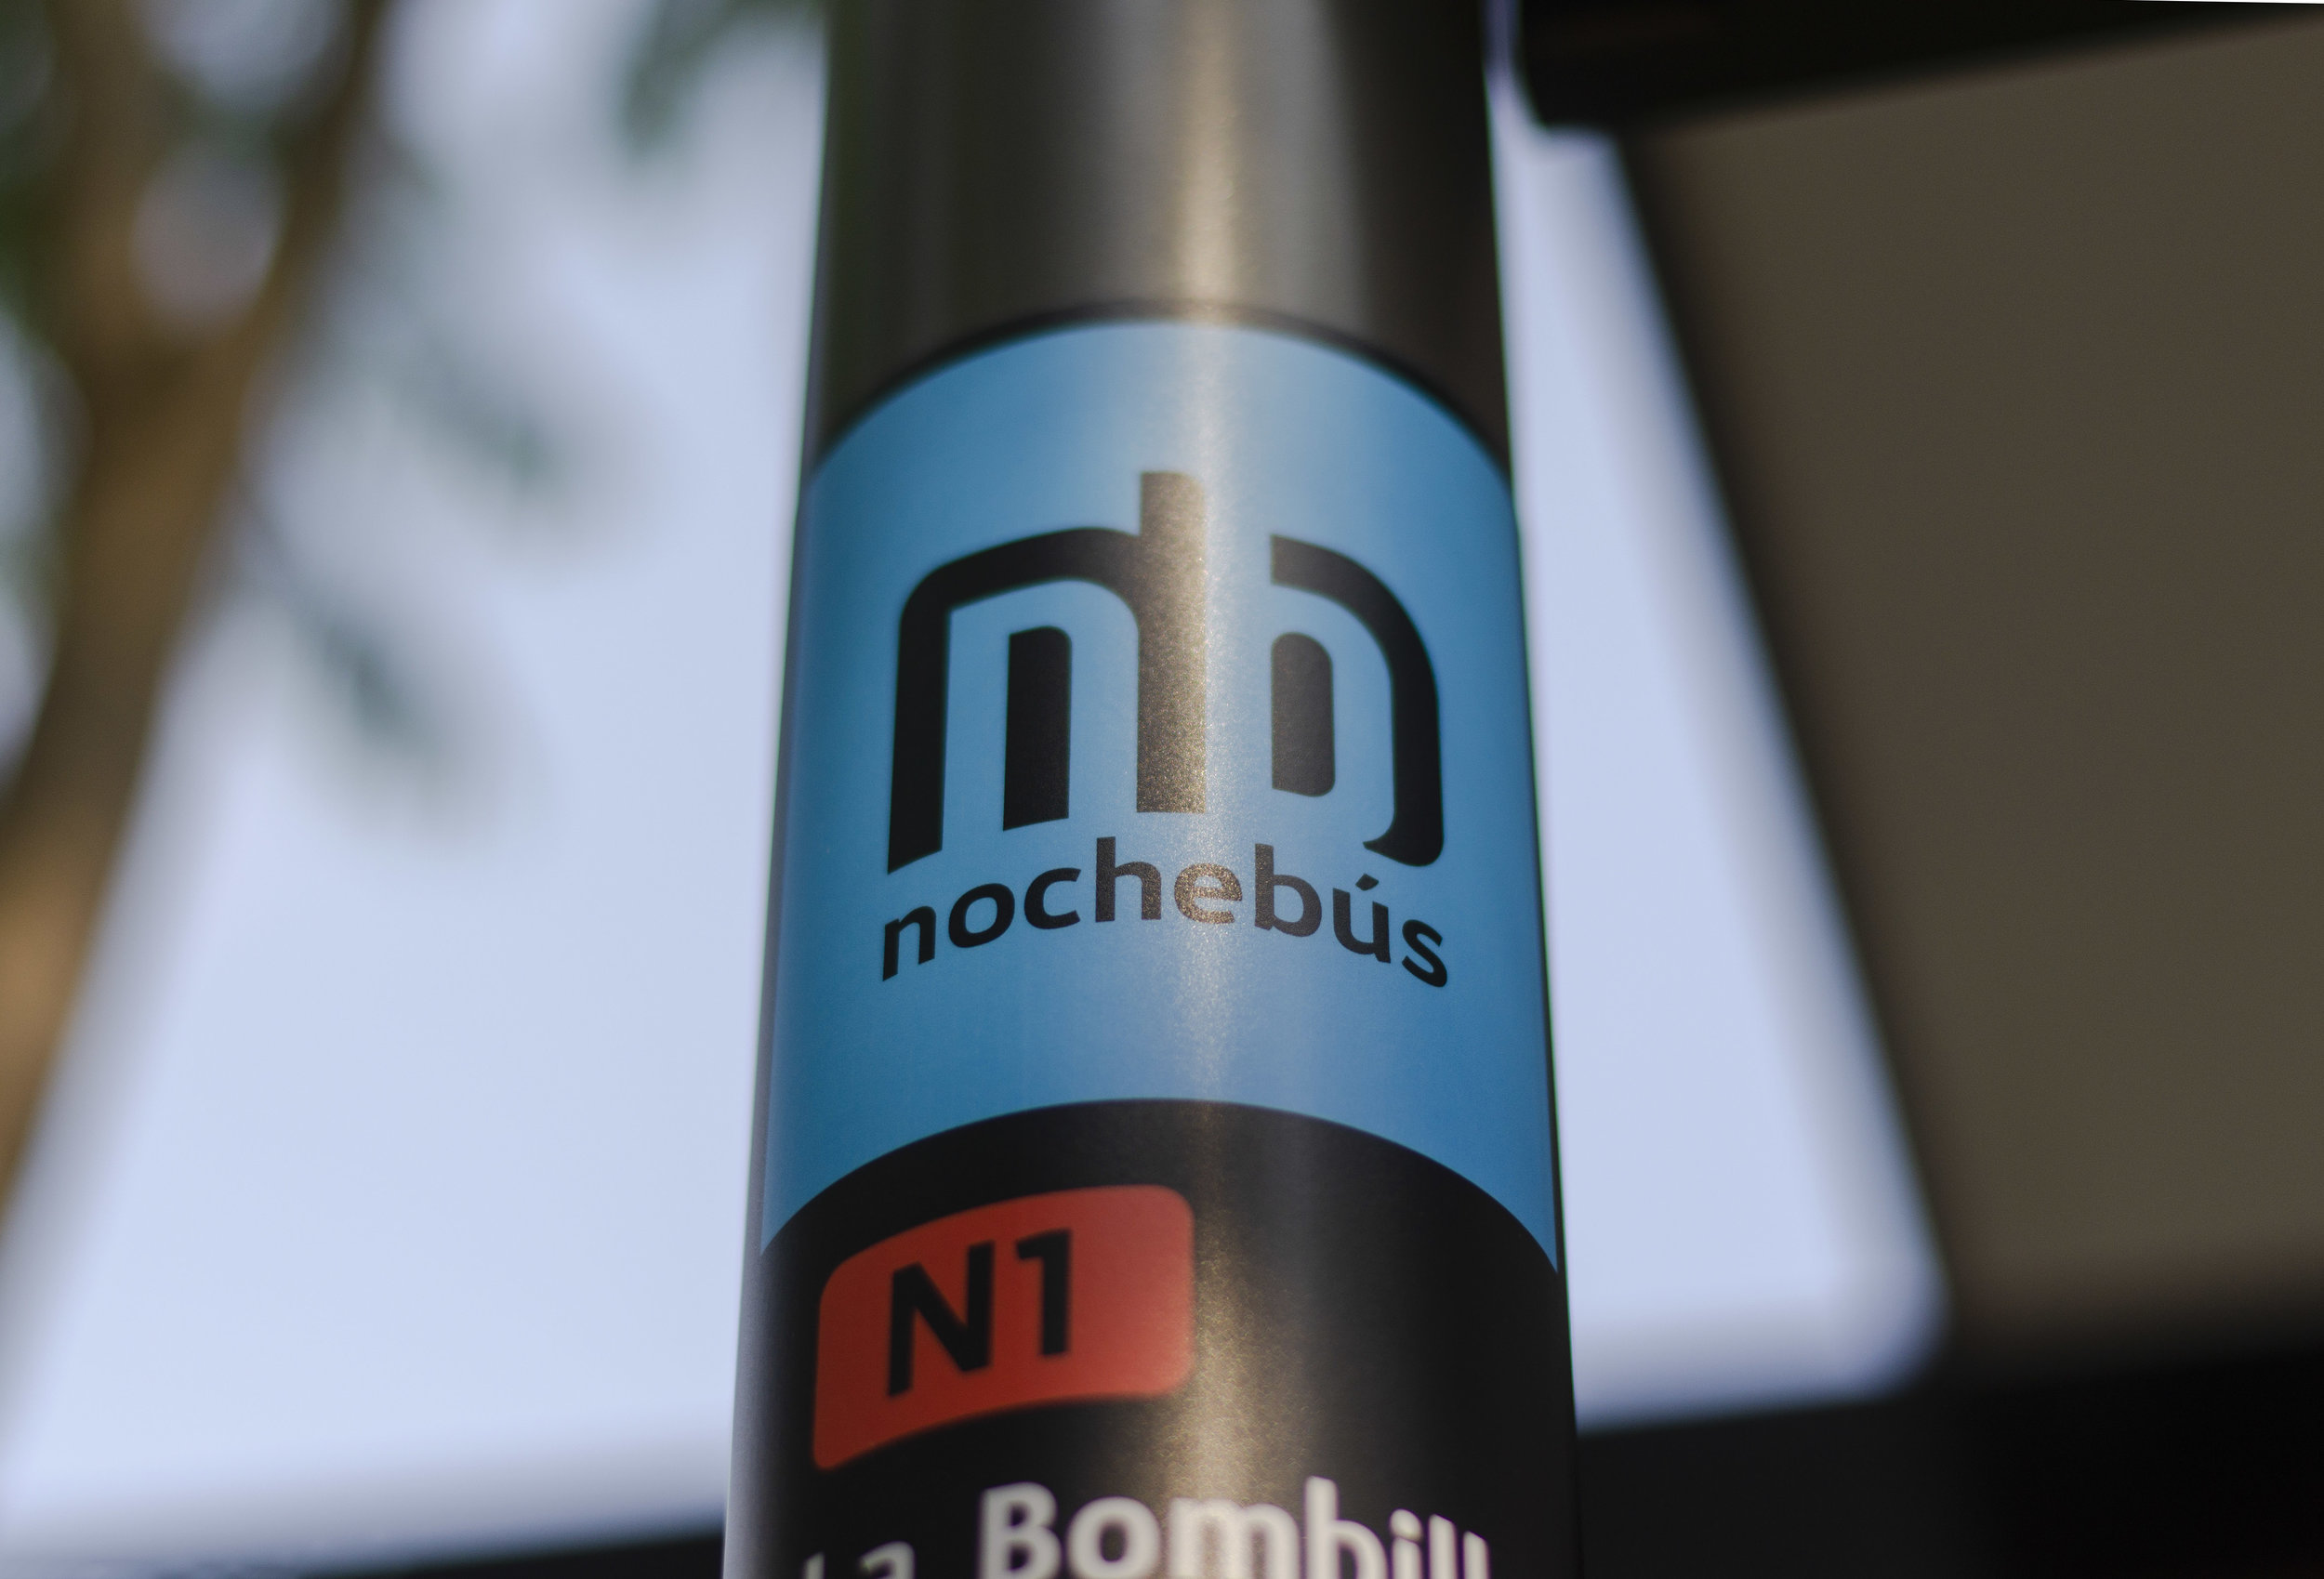 Nochebús brand applied to on street products